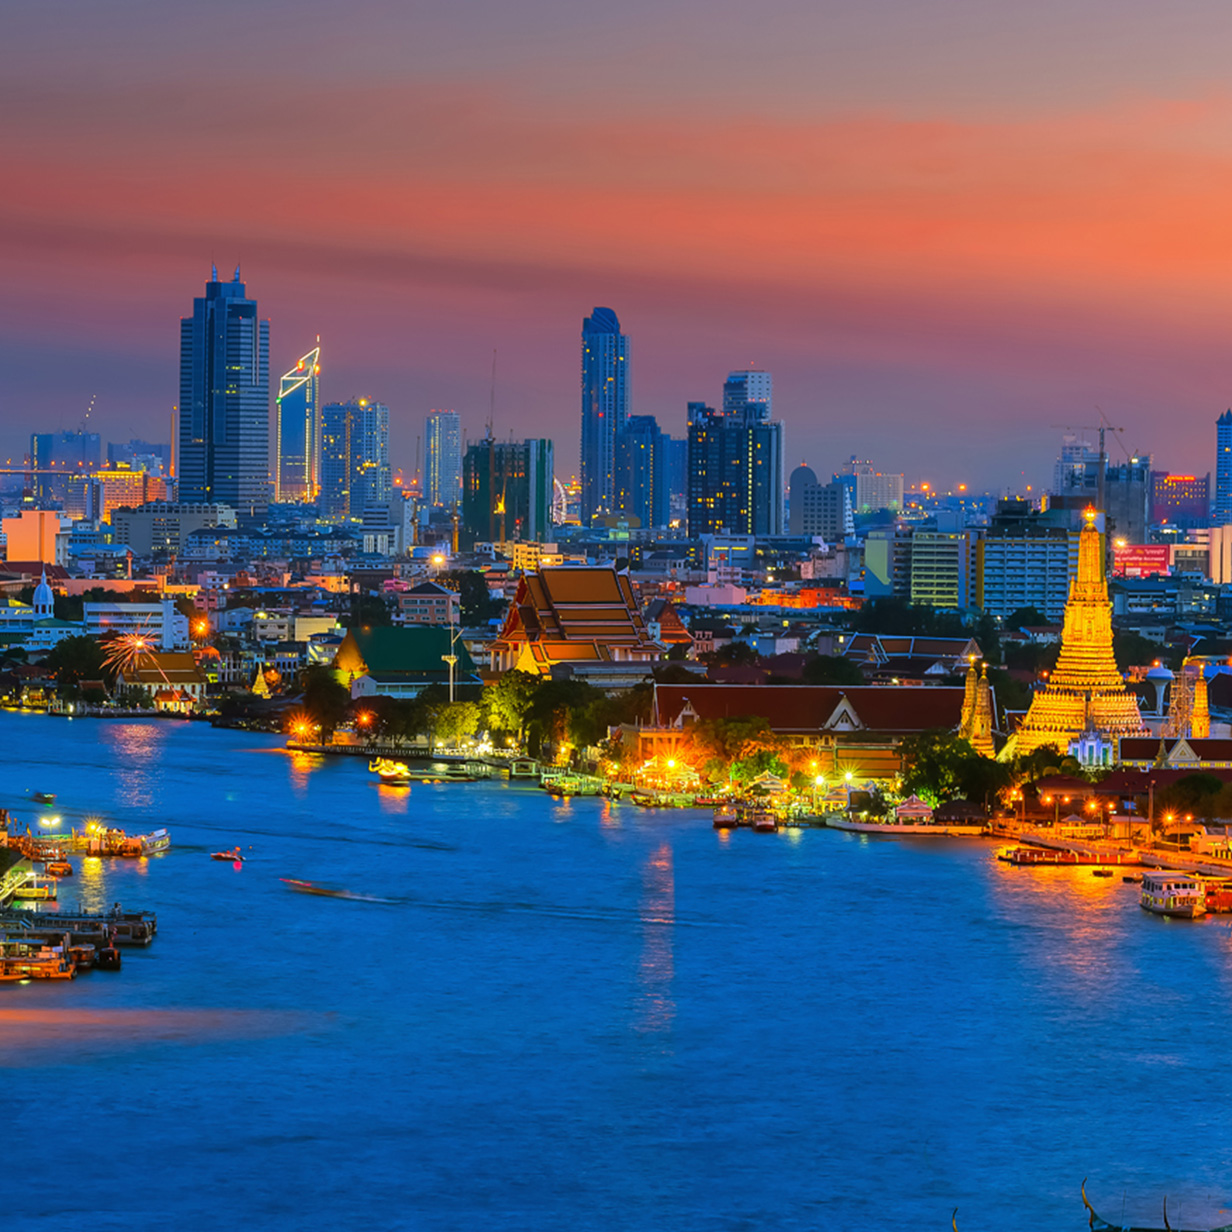 Bangkok Thailand Most Visited City In Asia-Pacific In 2017